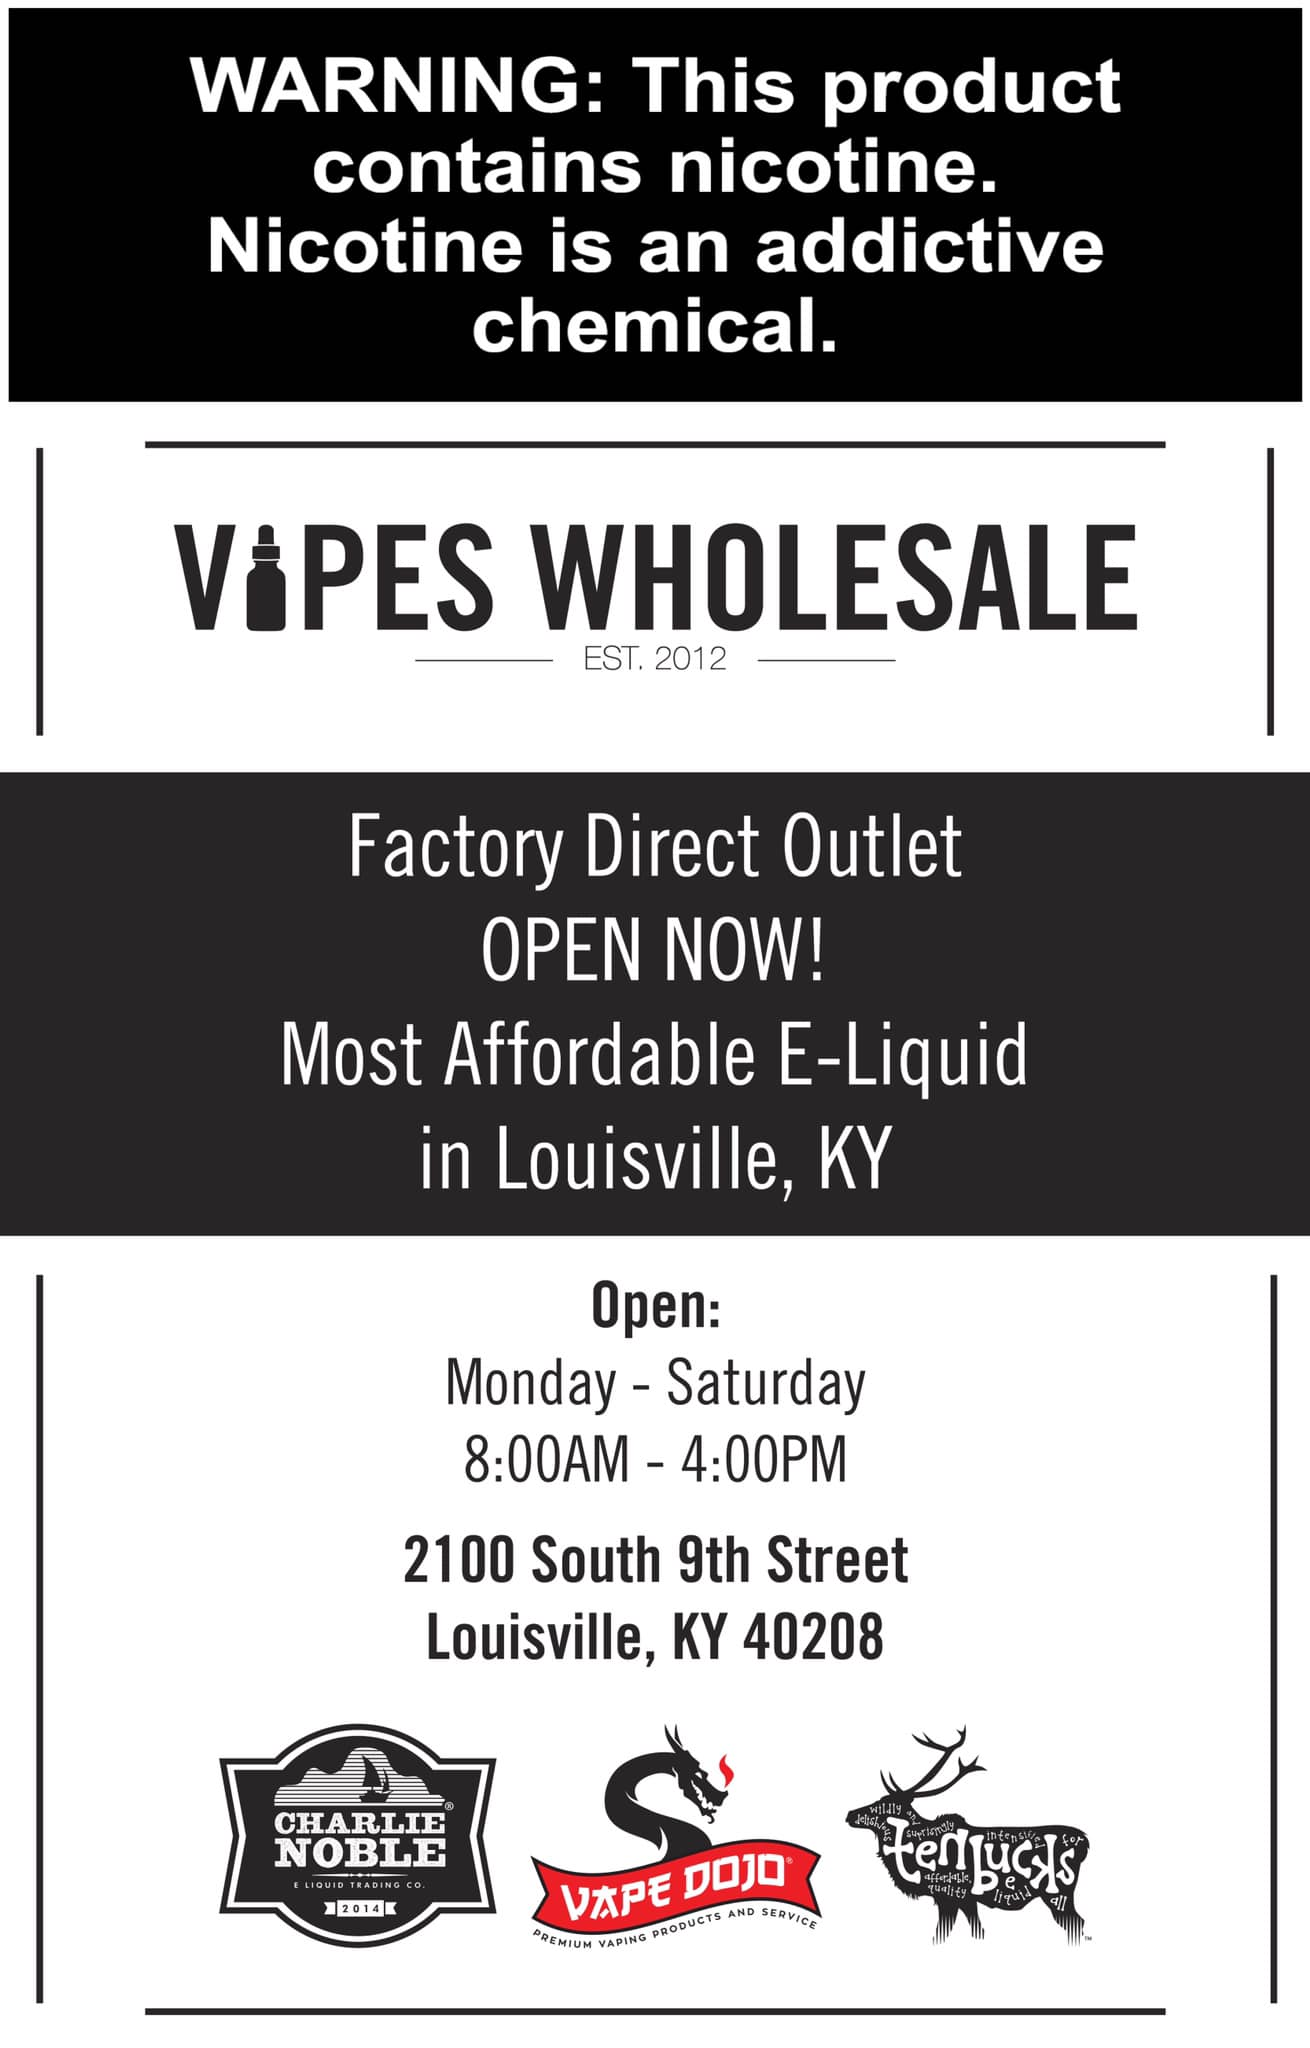 Vapes Wholesale NEW Outlet Store! $7.50 for 60ml, $10 for 120ml!